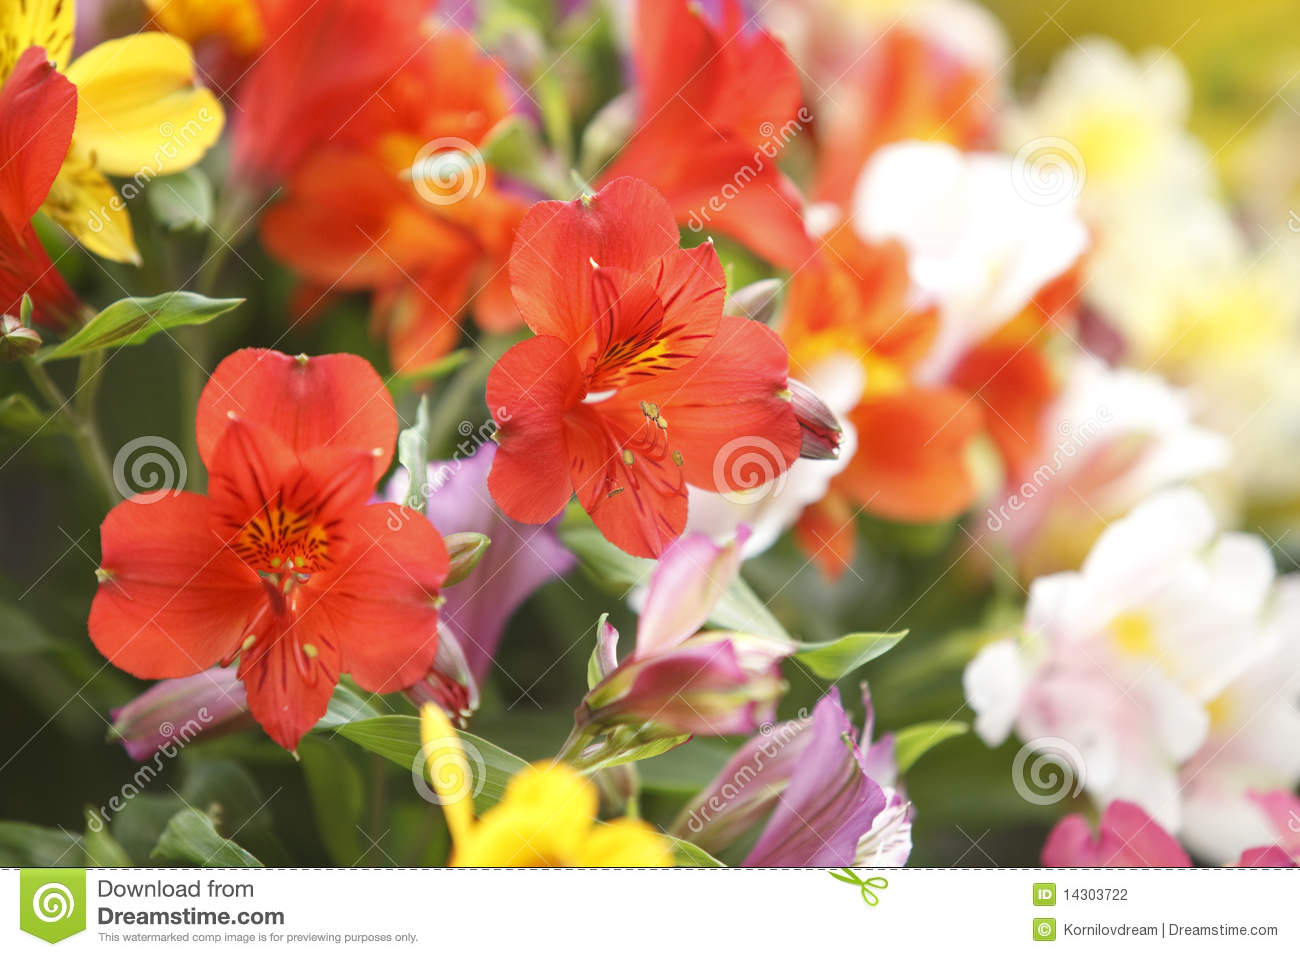 Flowers bouquet stock photography image 14303722 for A lot of different flowers make a bouquet